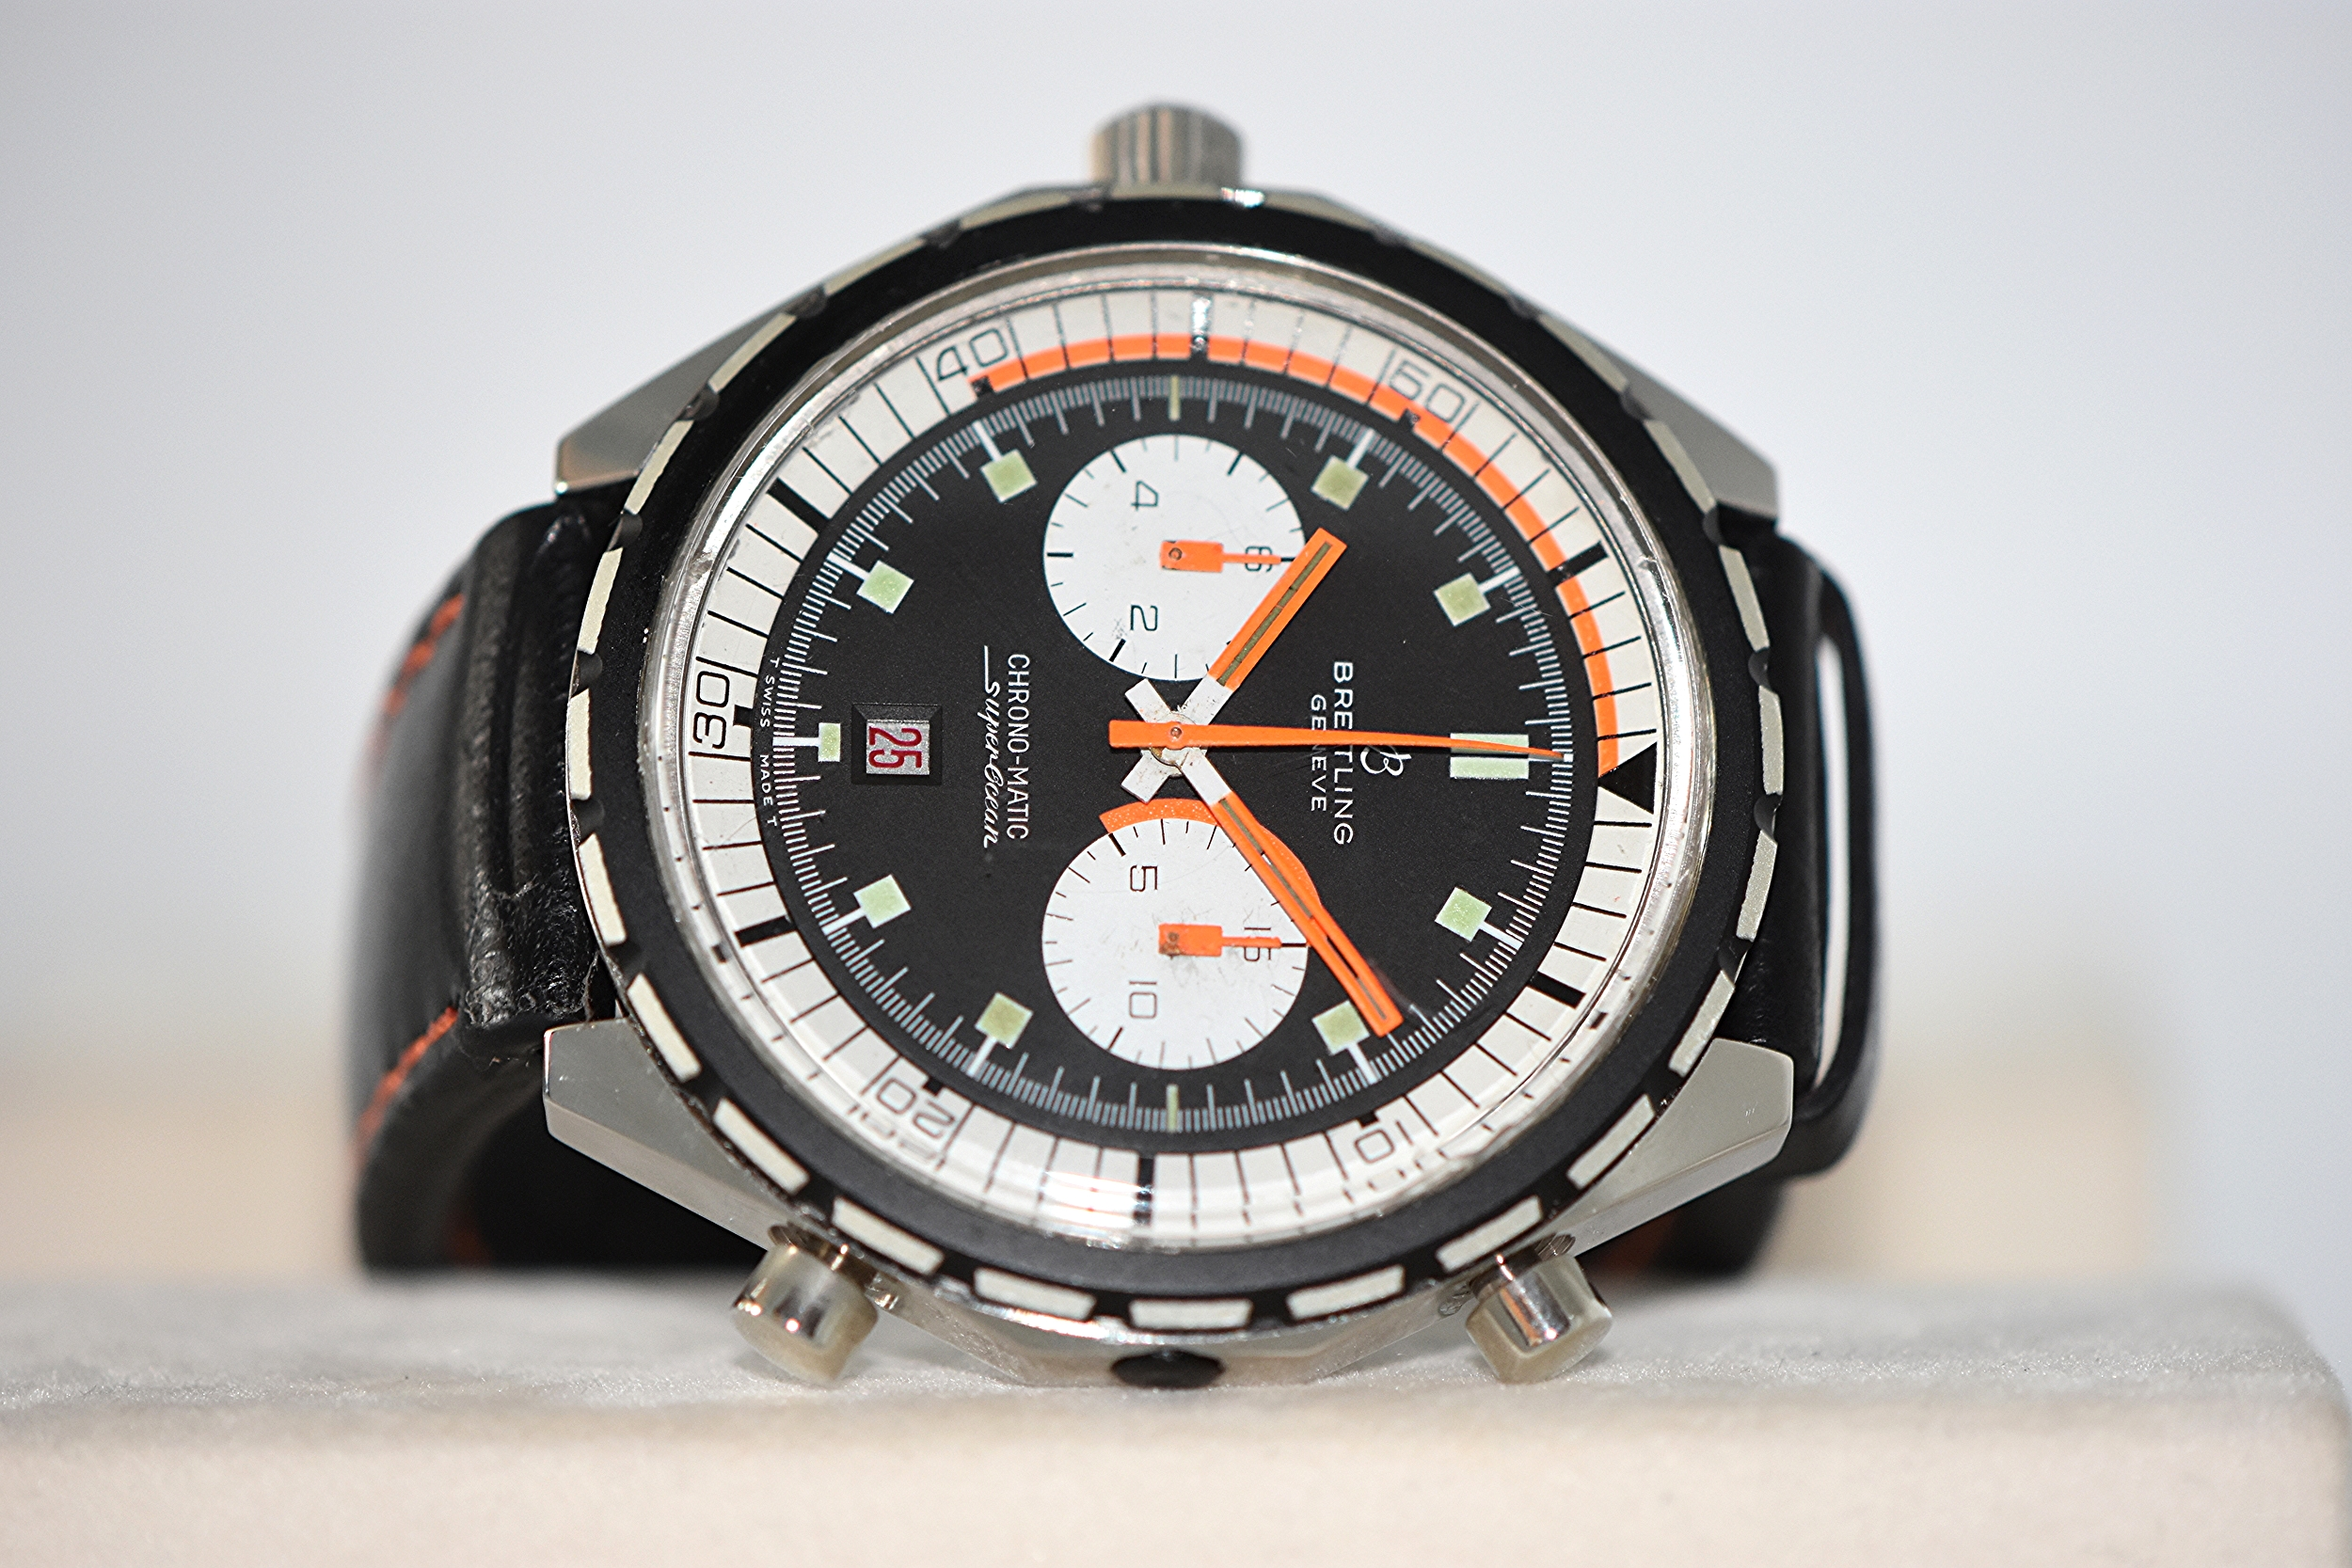 Breitling Chrono-matic Superocean Ref. 2105   SOLD